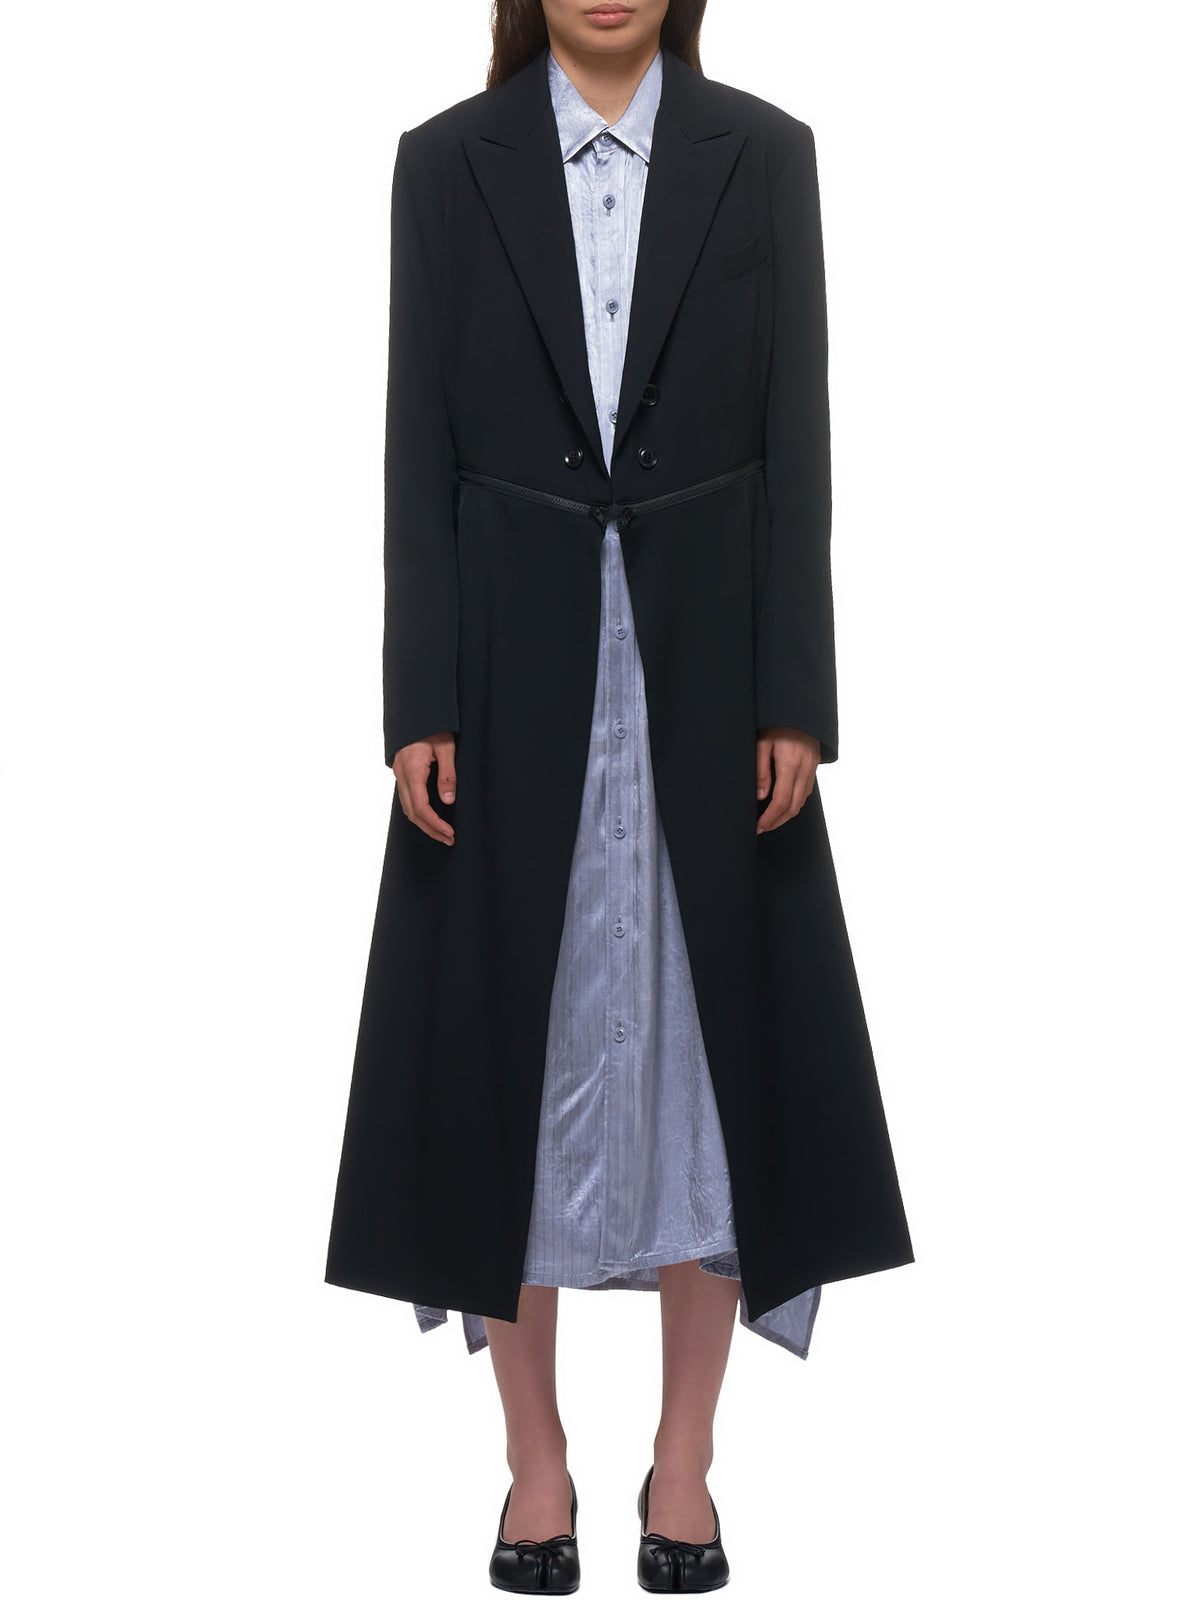 Zippered Wool Coat (YN-J01-100-1-BLACK)